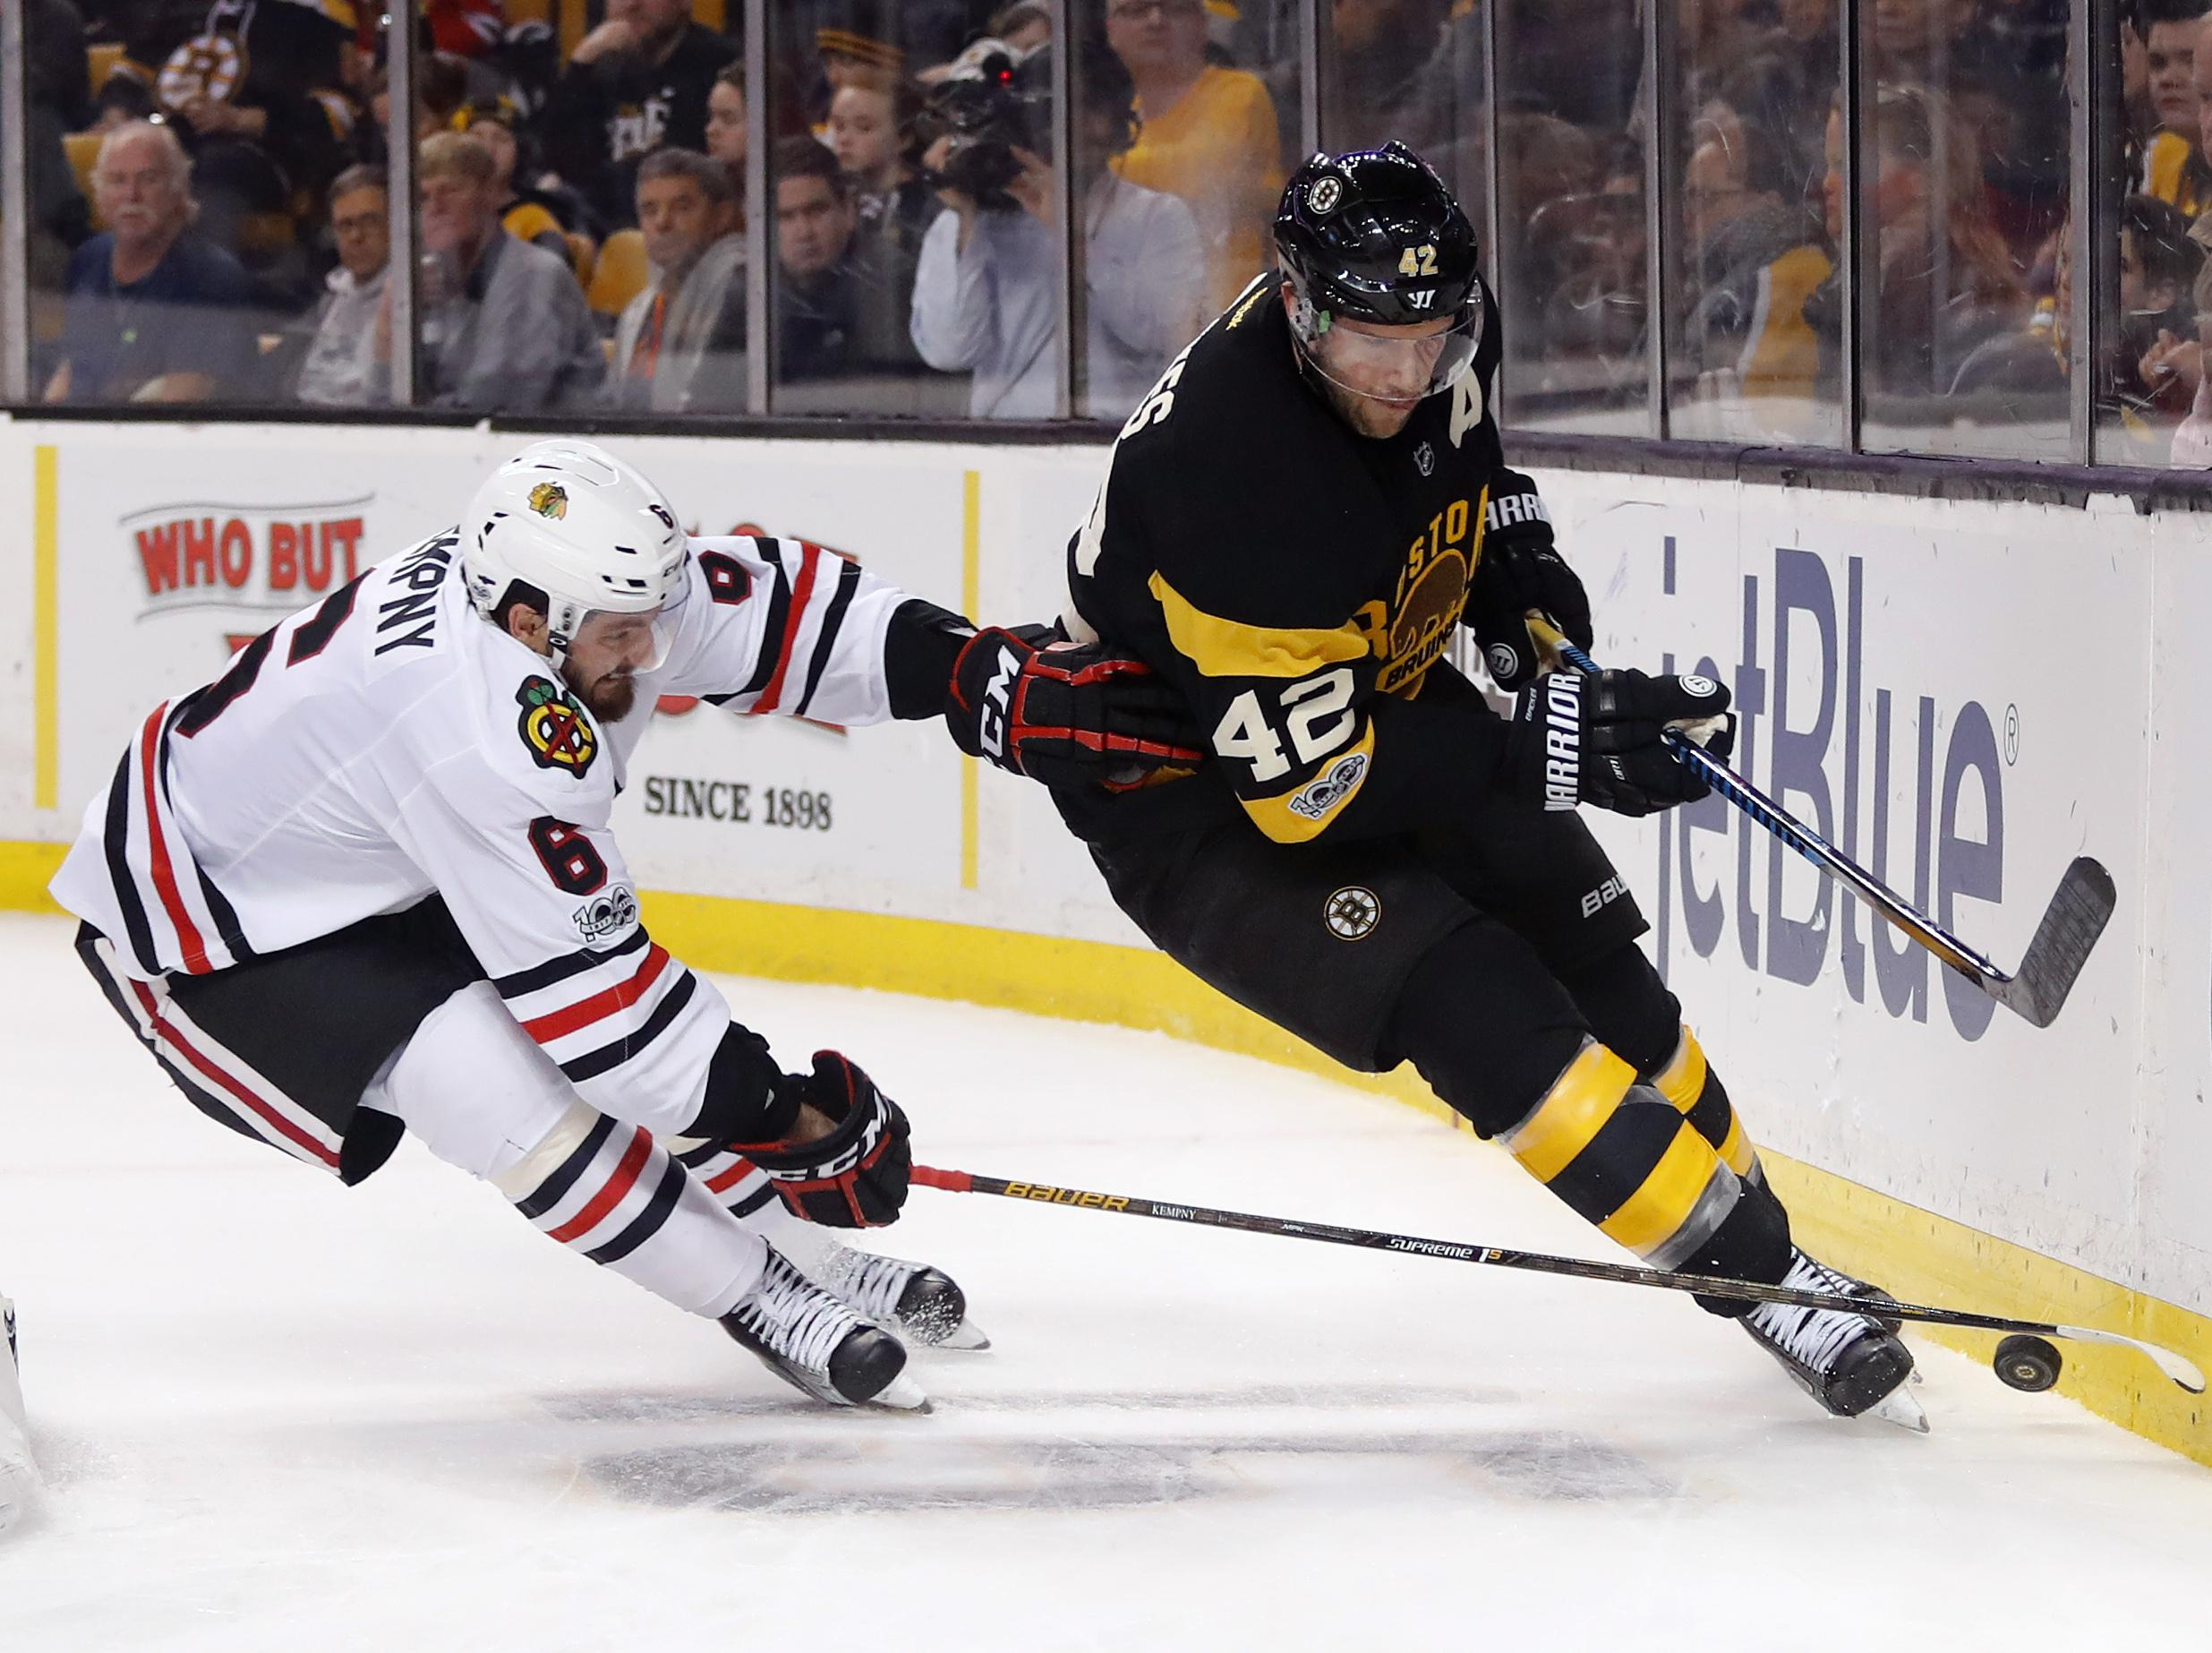 Blackhawks_bruins_hockey_74259